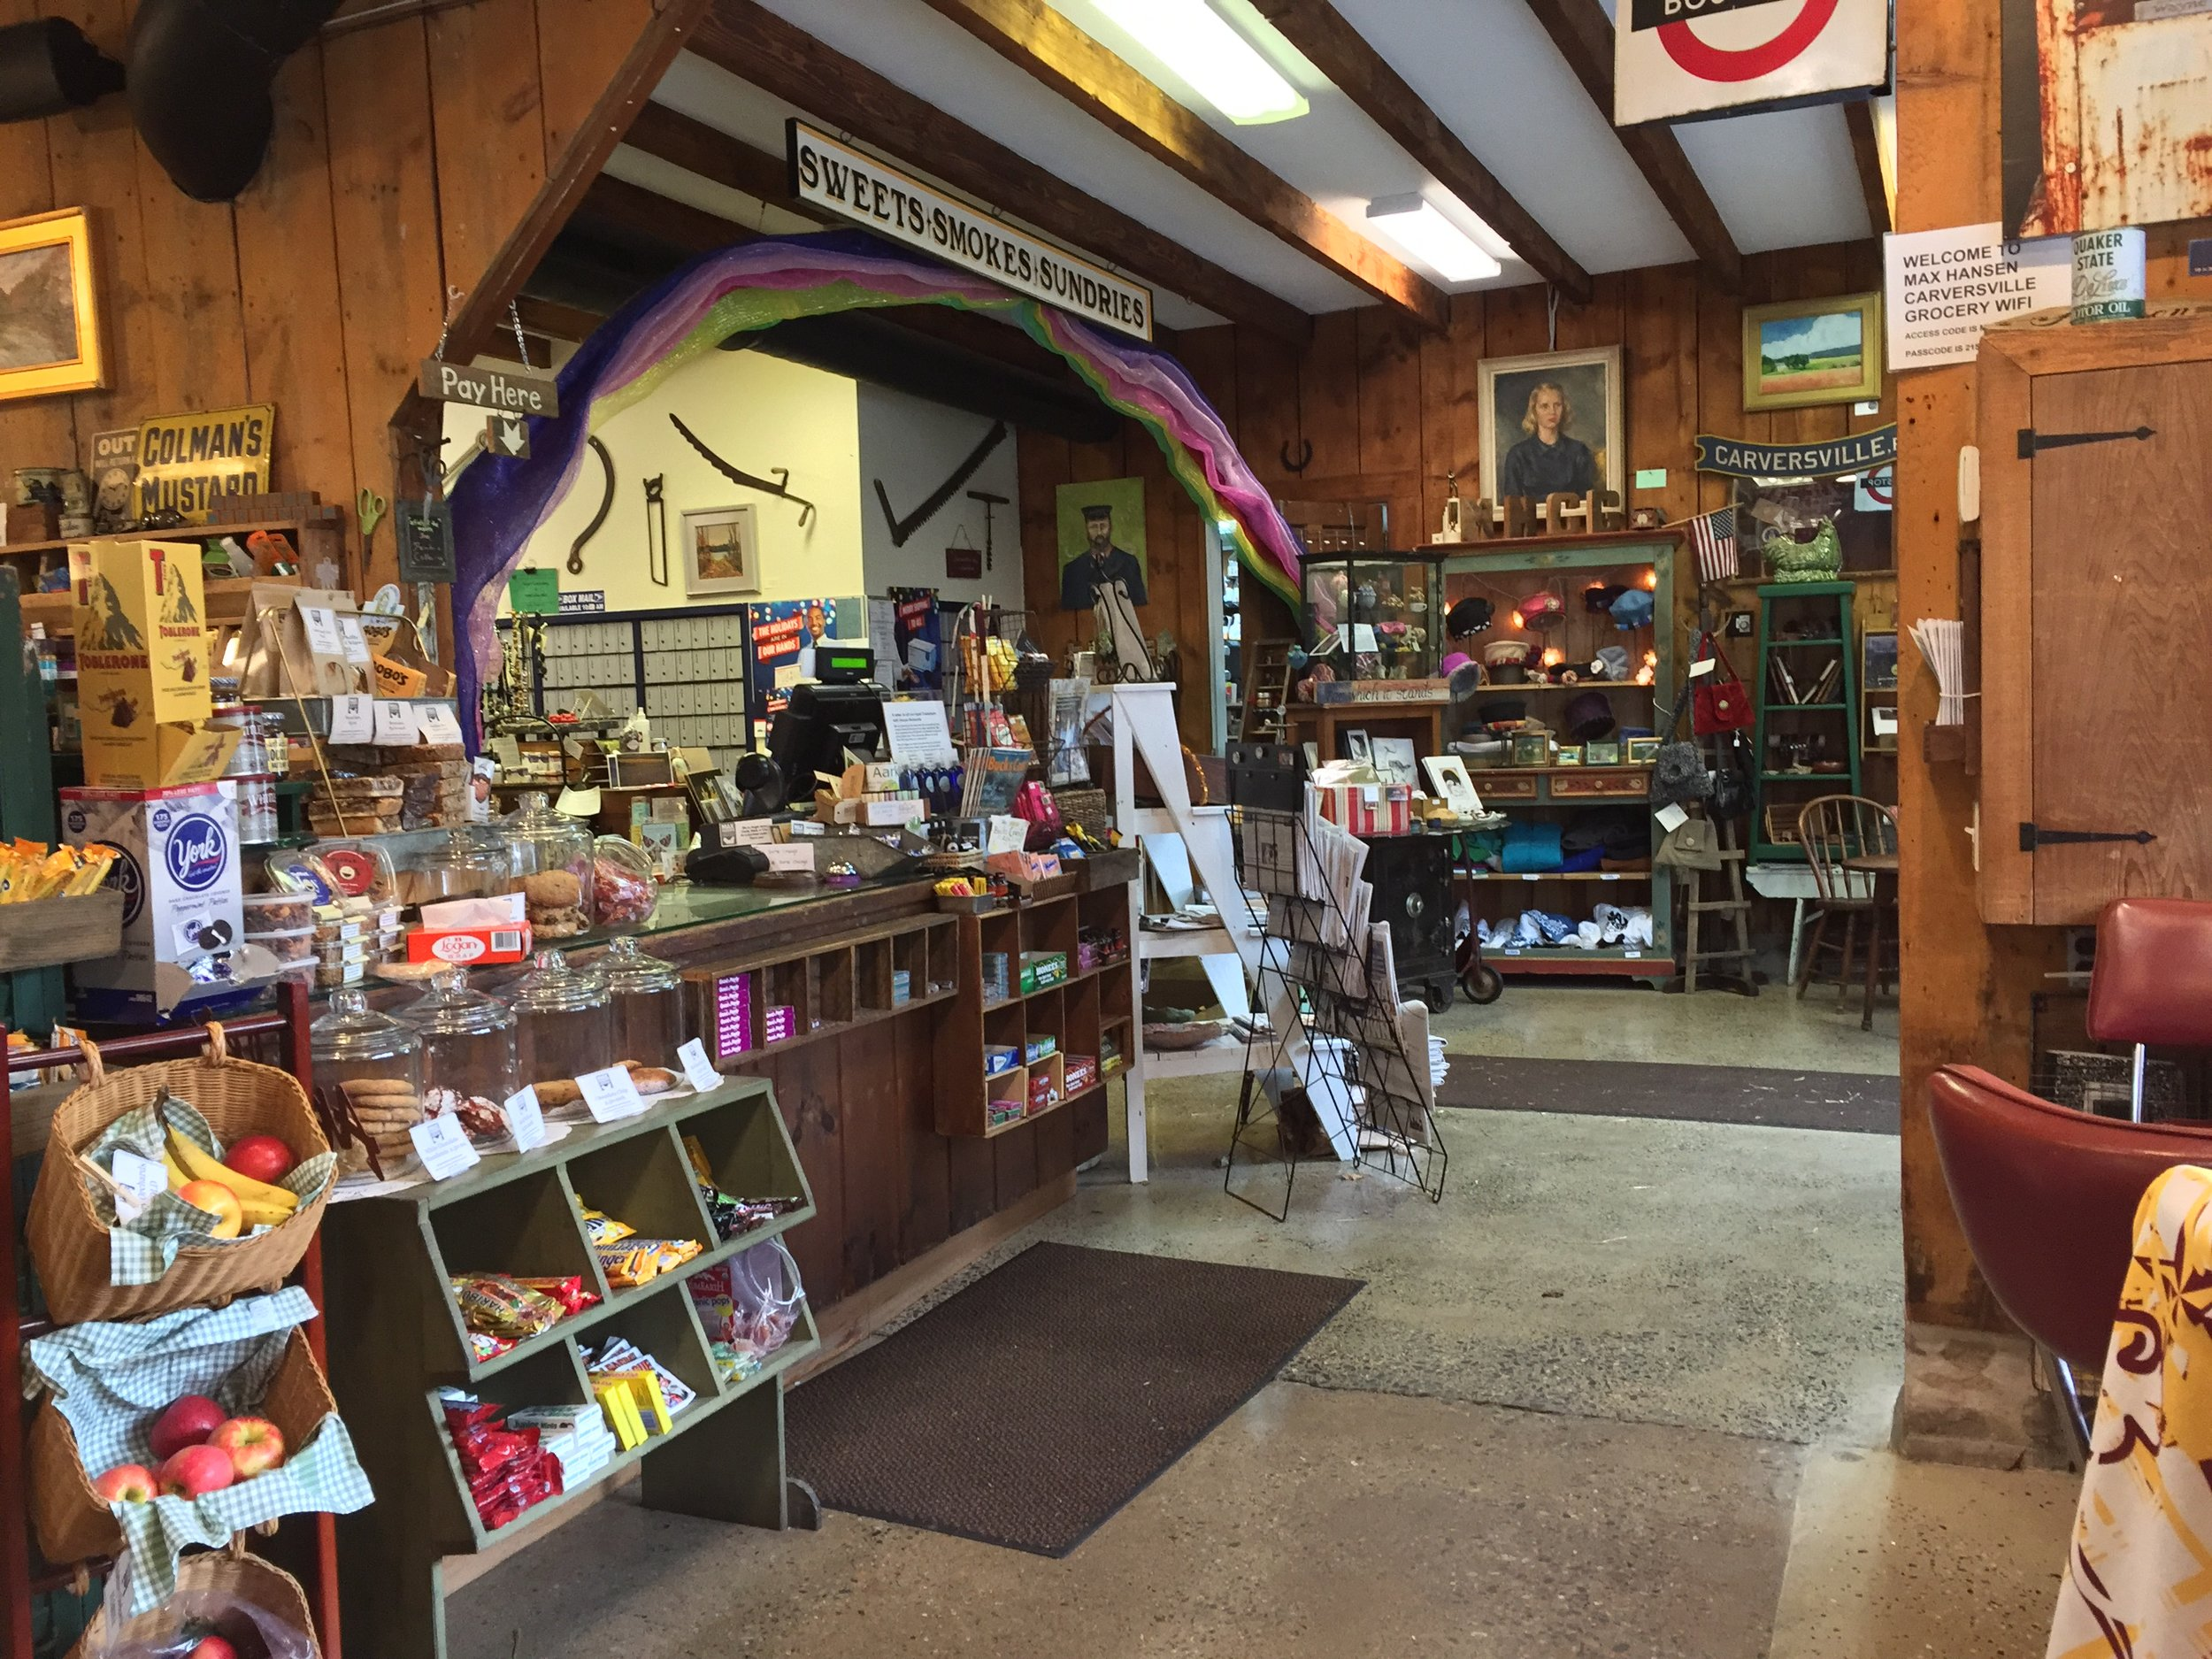 Photographed from our window seat, Max Hansen's Carversville Grocery doubles as a post office.